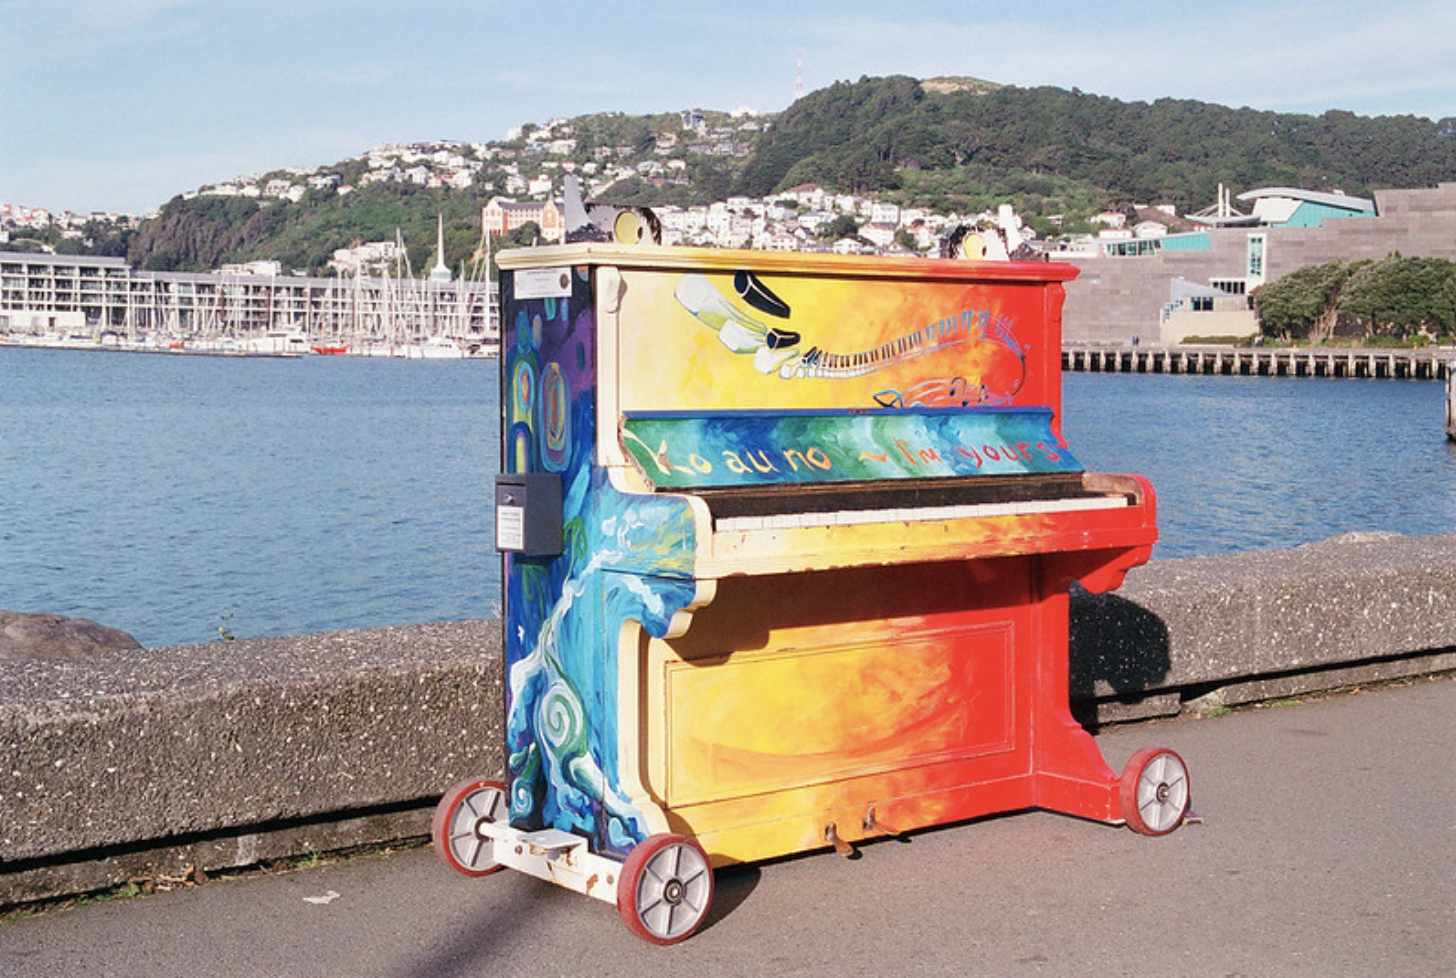 Anyone can walk up to and play this piano on a pier in Wellington, New Zealand, the world's third happiest city, August 2, 2019 (Photo by N.J. Cull) Creative Commons license via Flickr